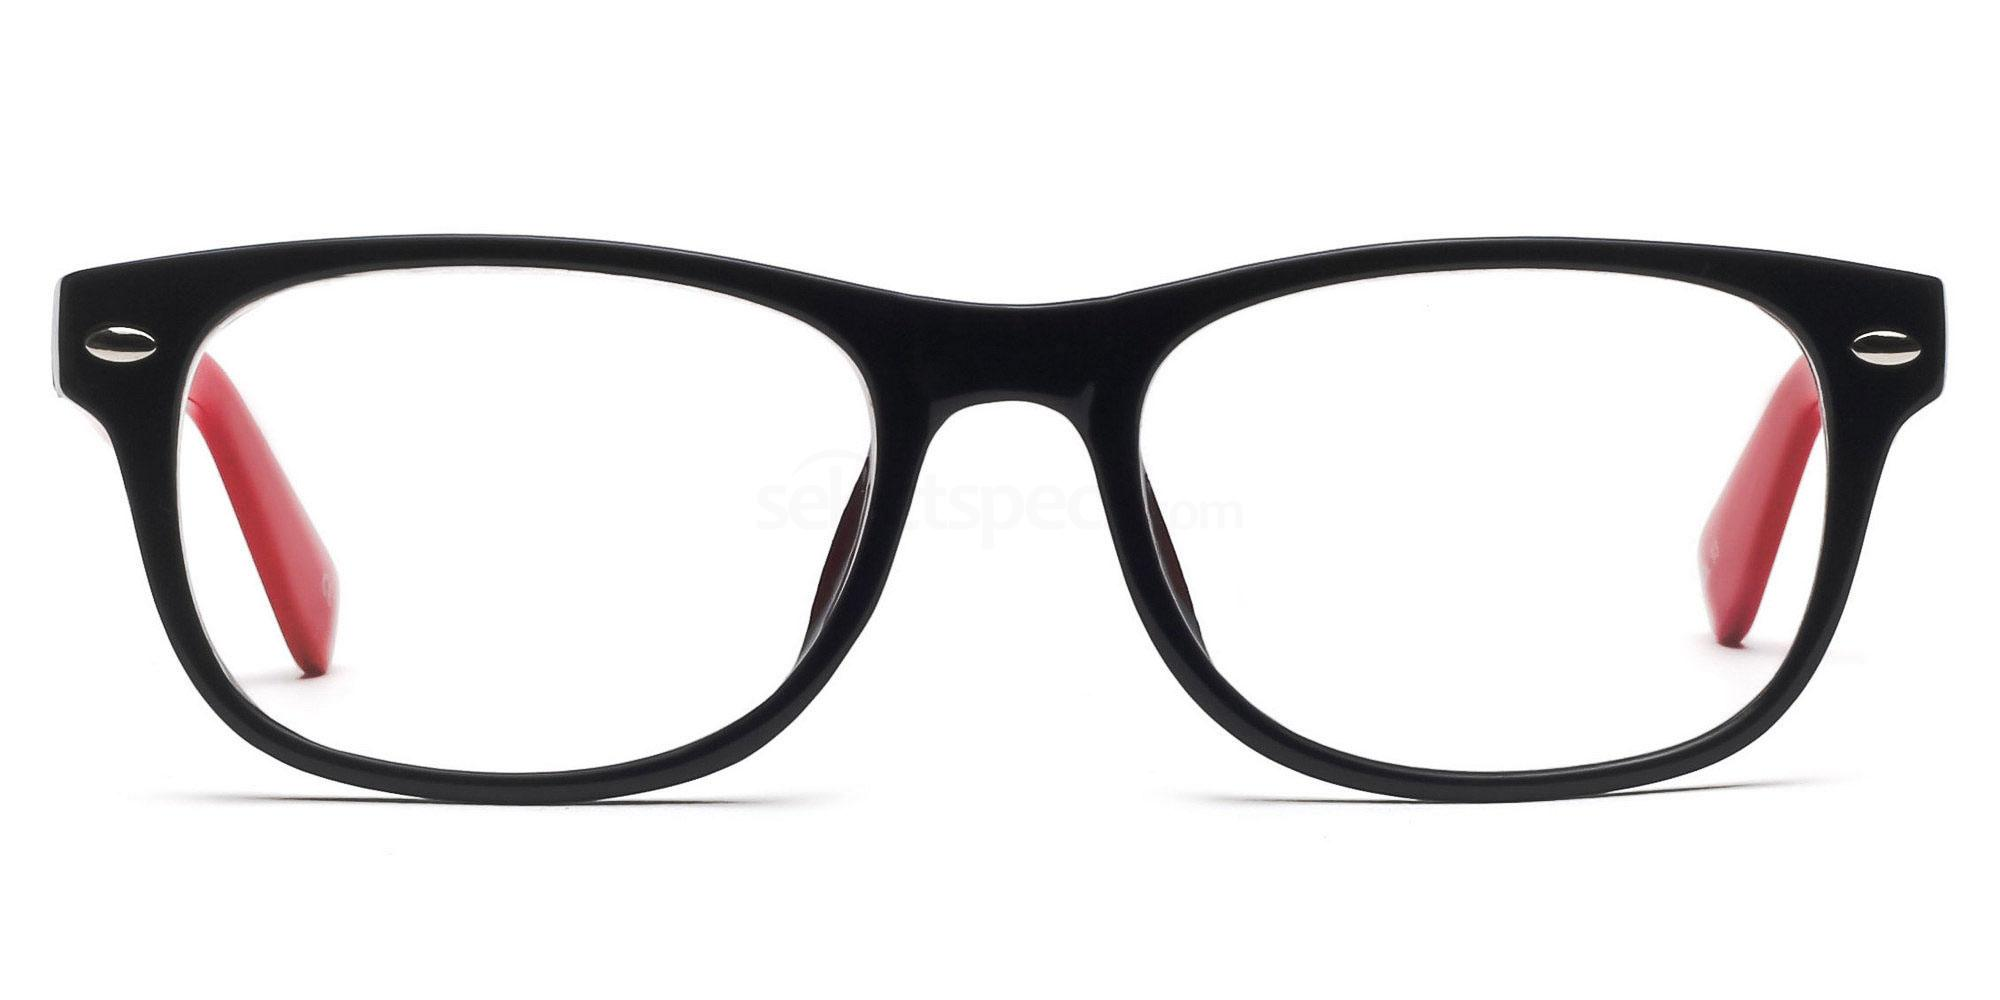 Black and Red P2383 - Black and Red Glasses, SelectSpecs